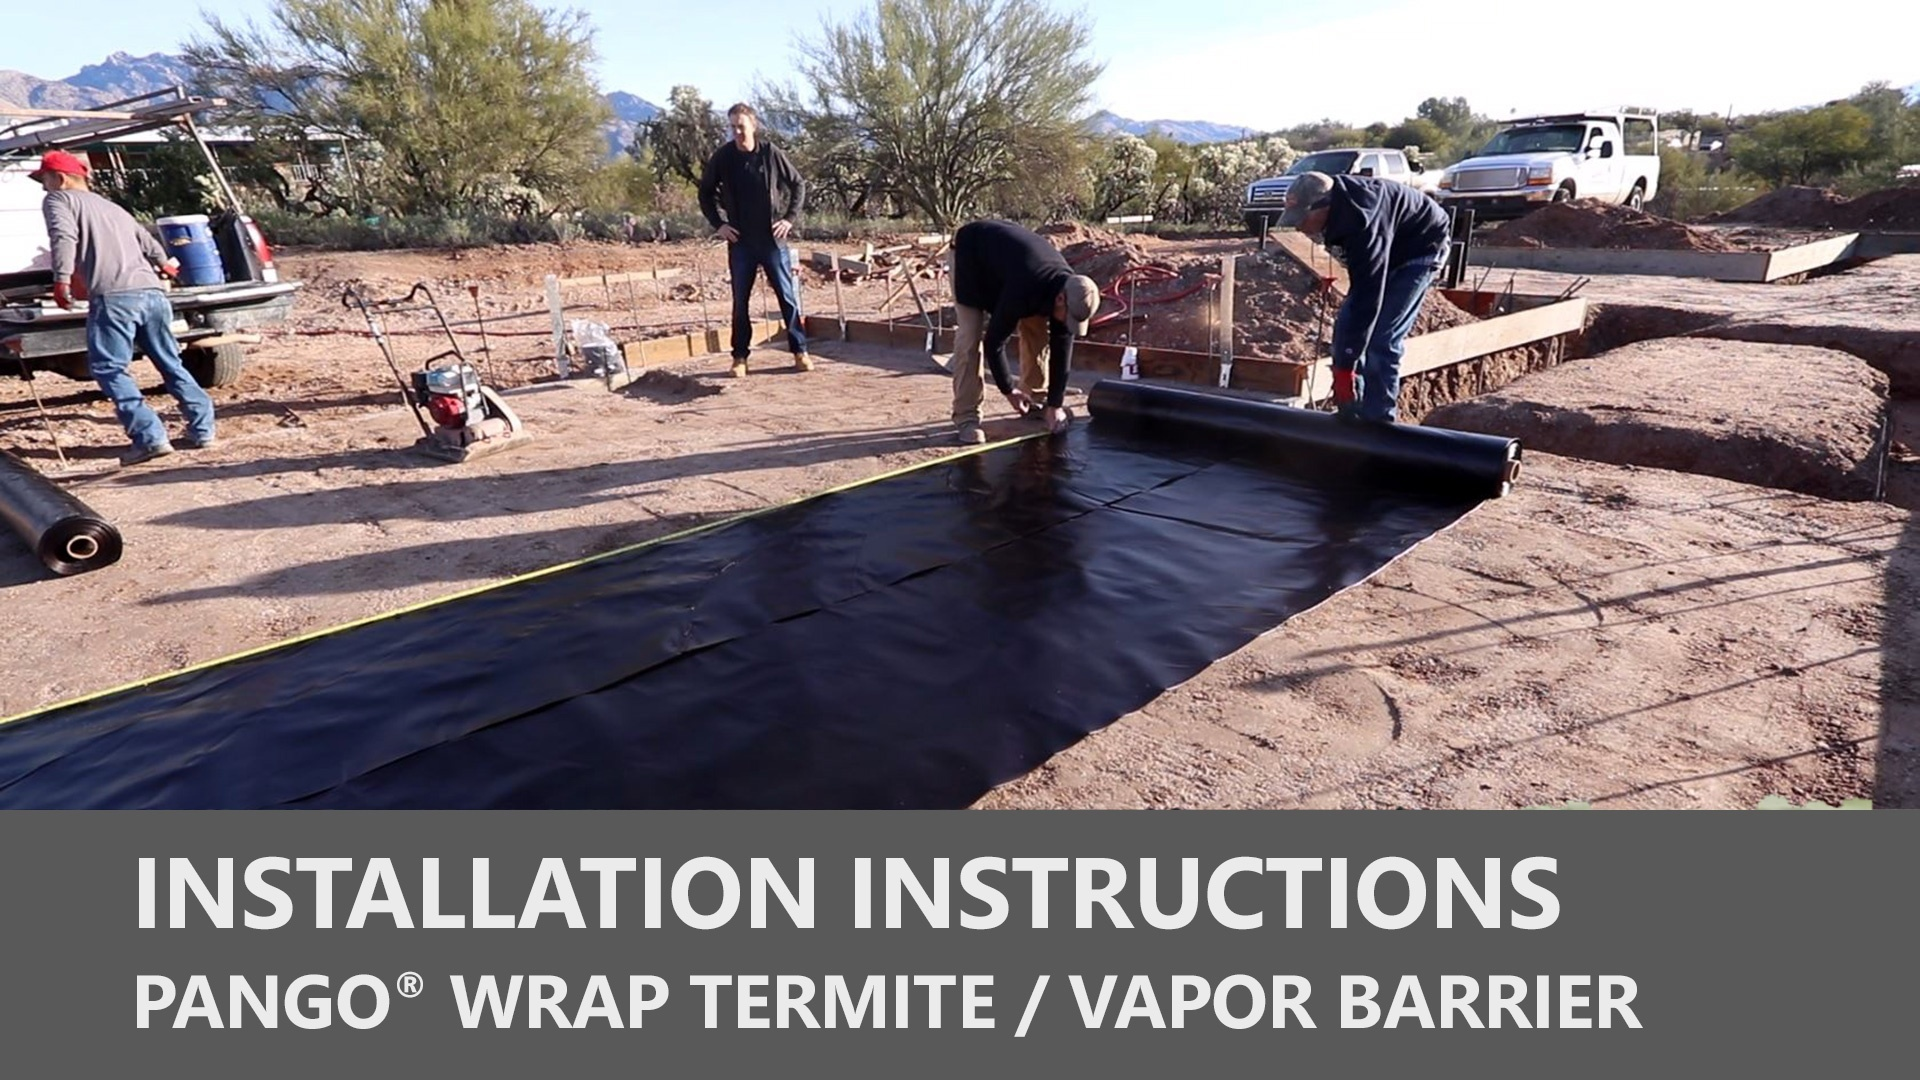 Pango Wrap Termite / Vapor Barrier Installation Instructions